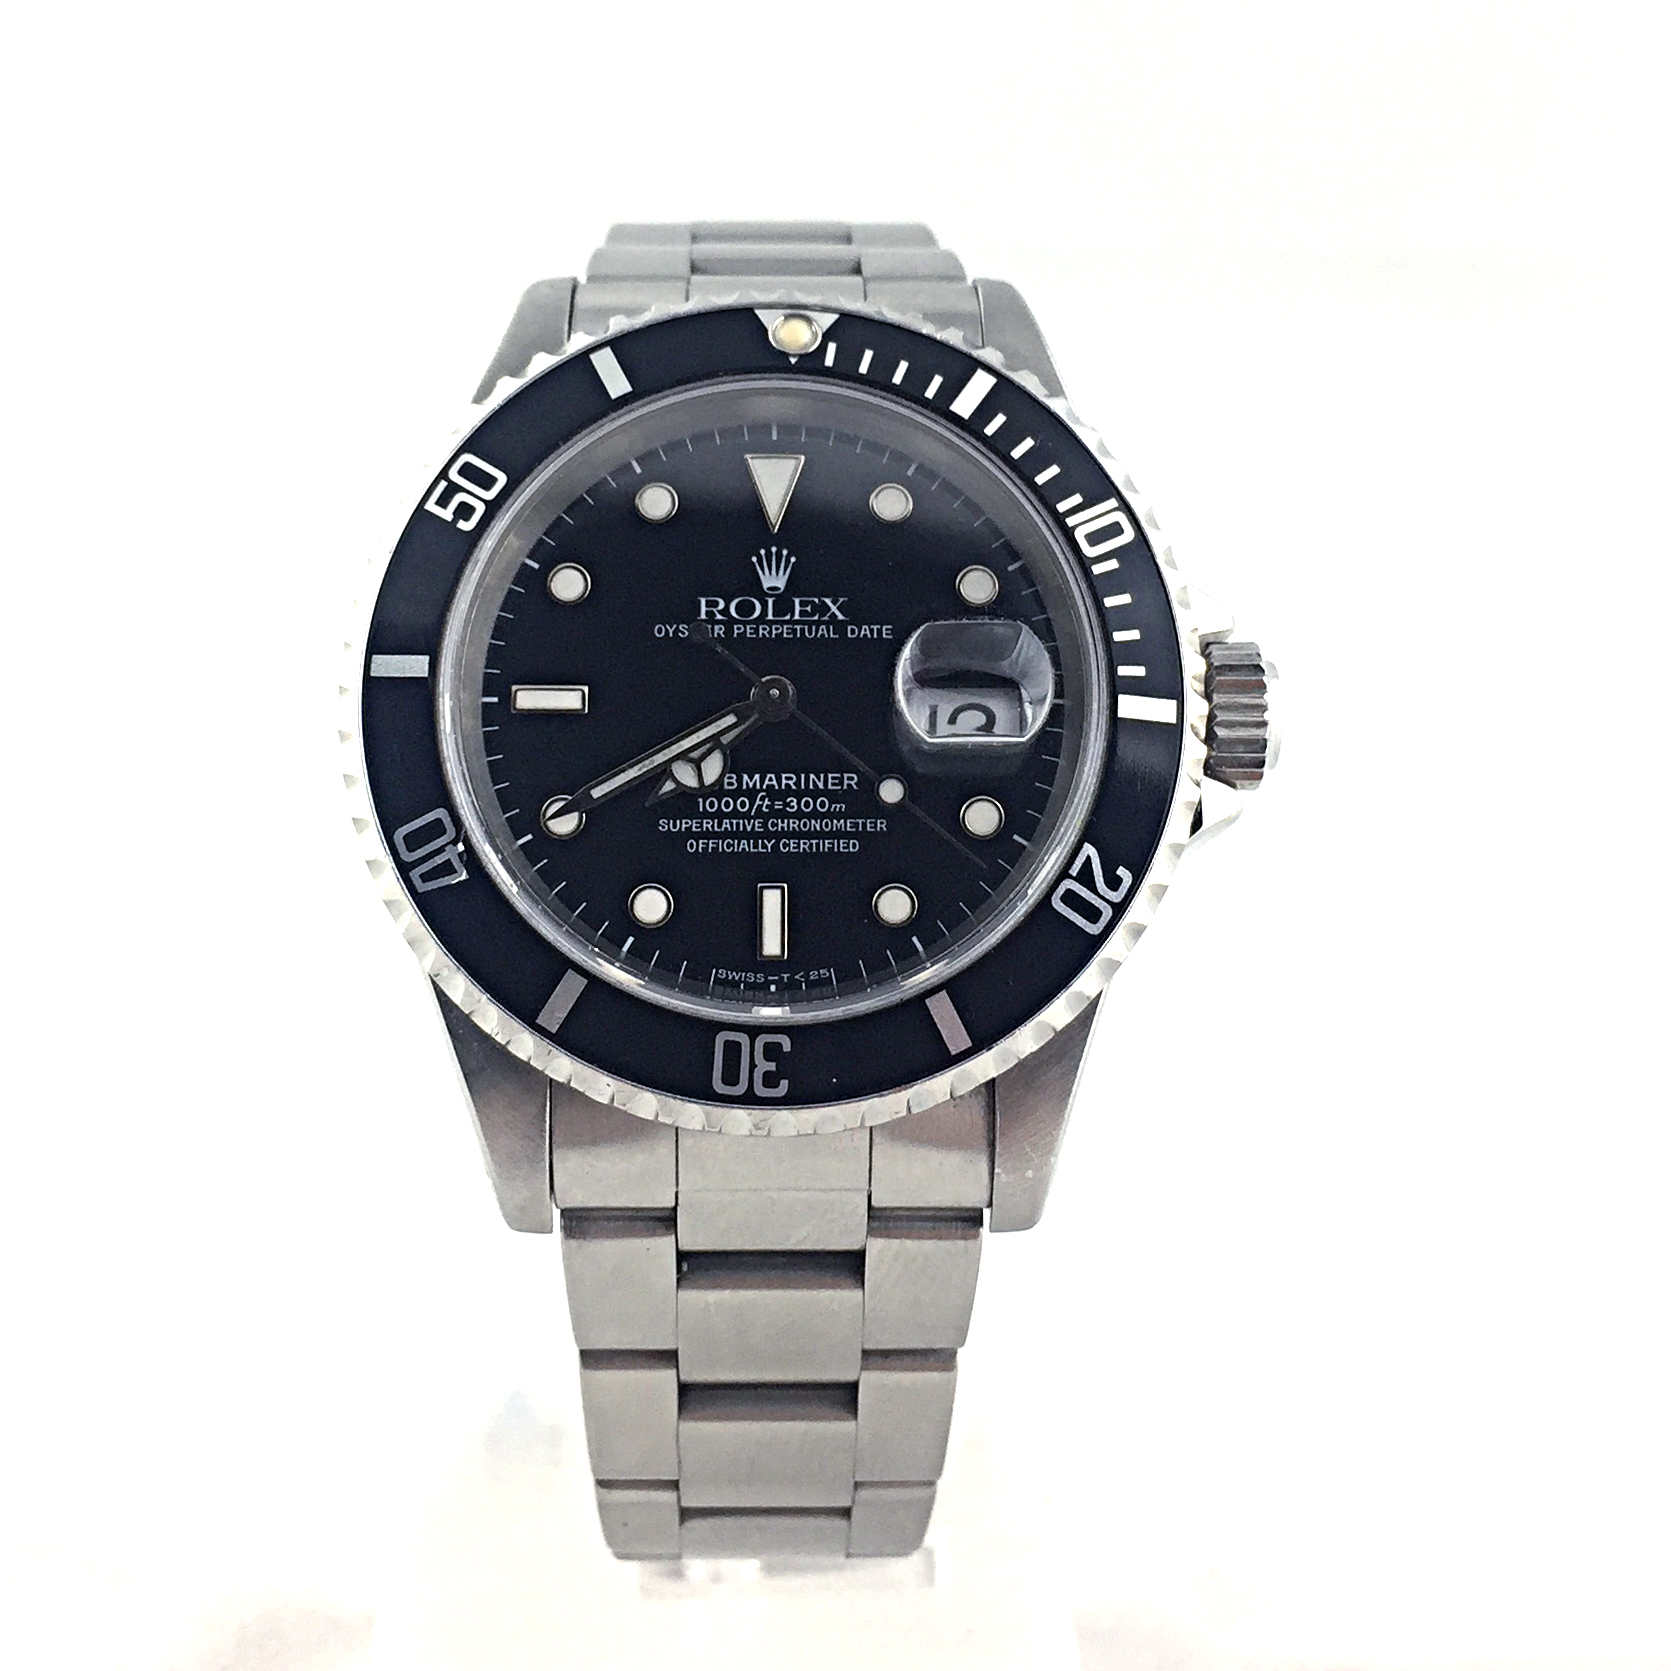 watches pinterest out style pin mariner sub submariner rolex black